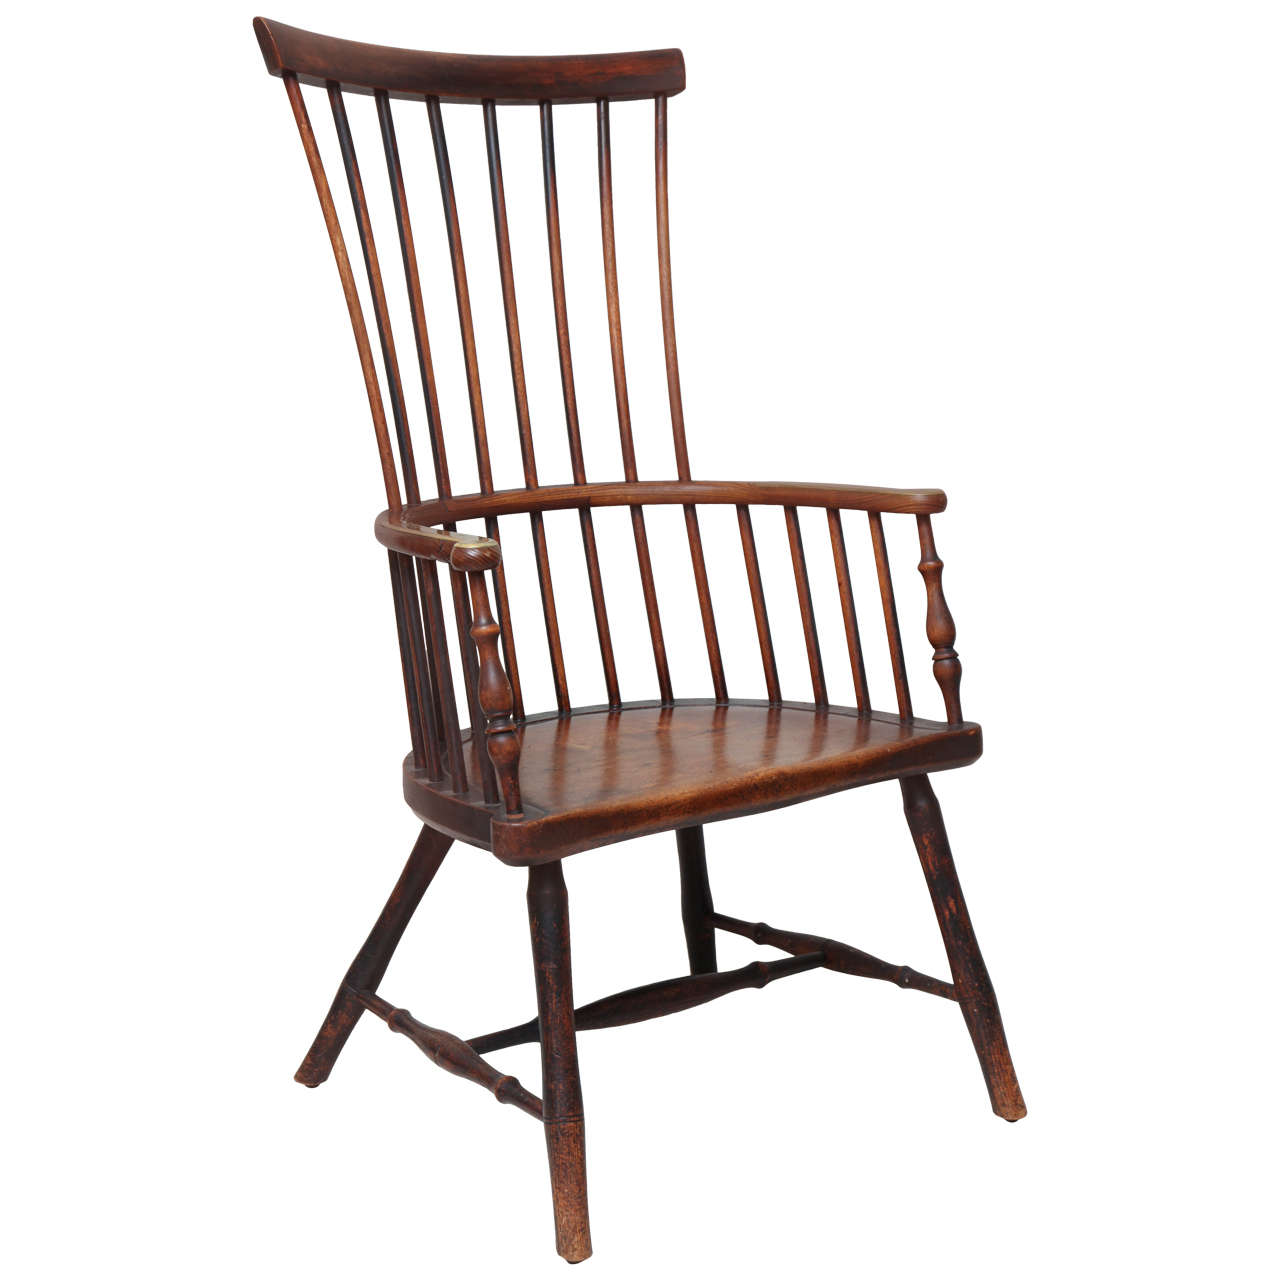 Merveilleux Early 19th Century Scottish Comb Back Windsor Armchair For Sale